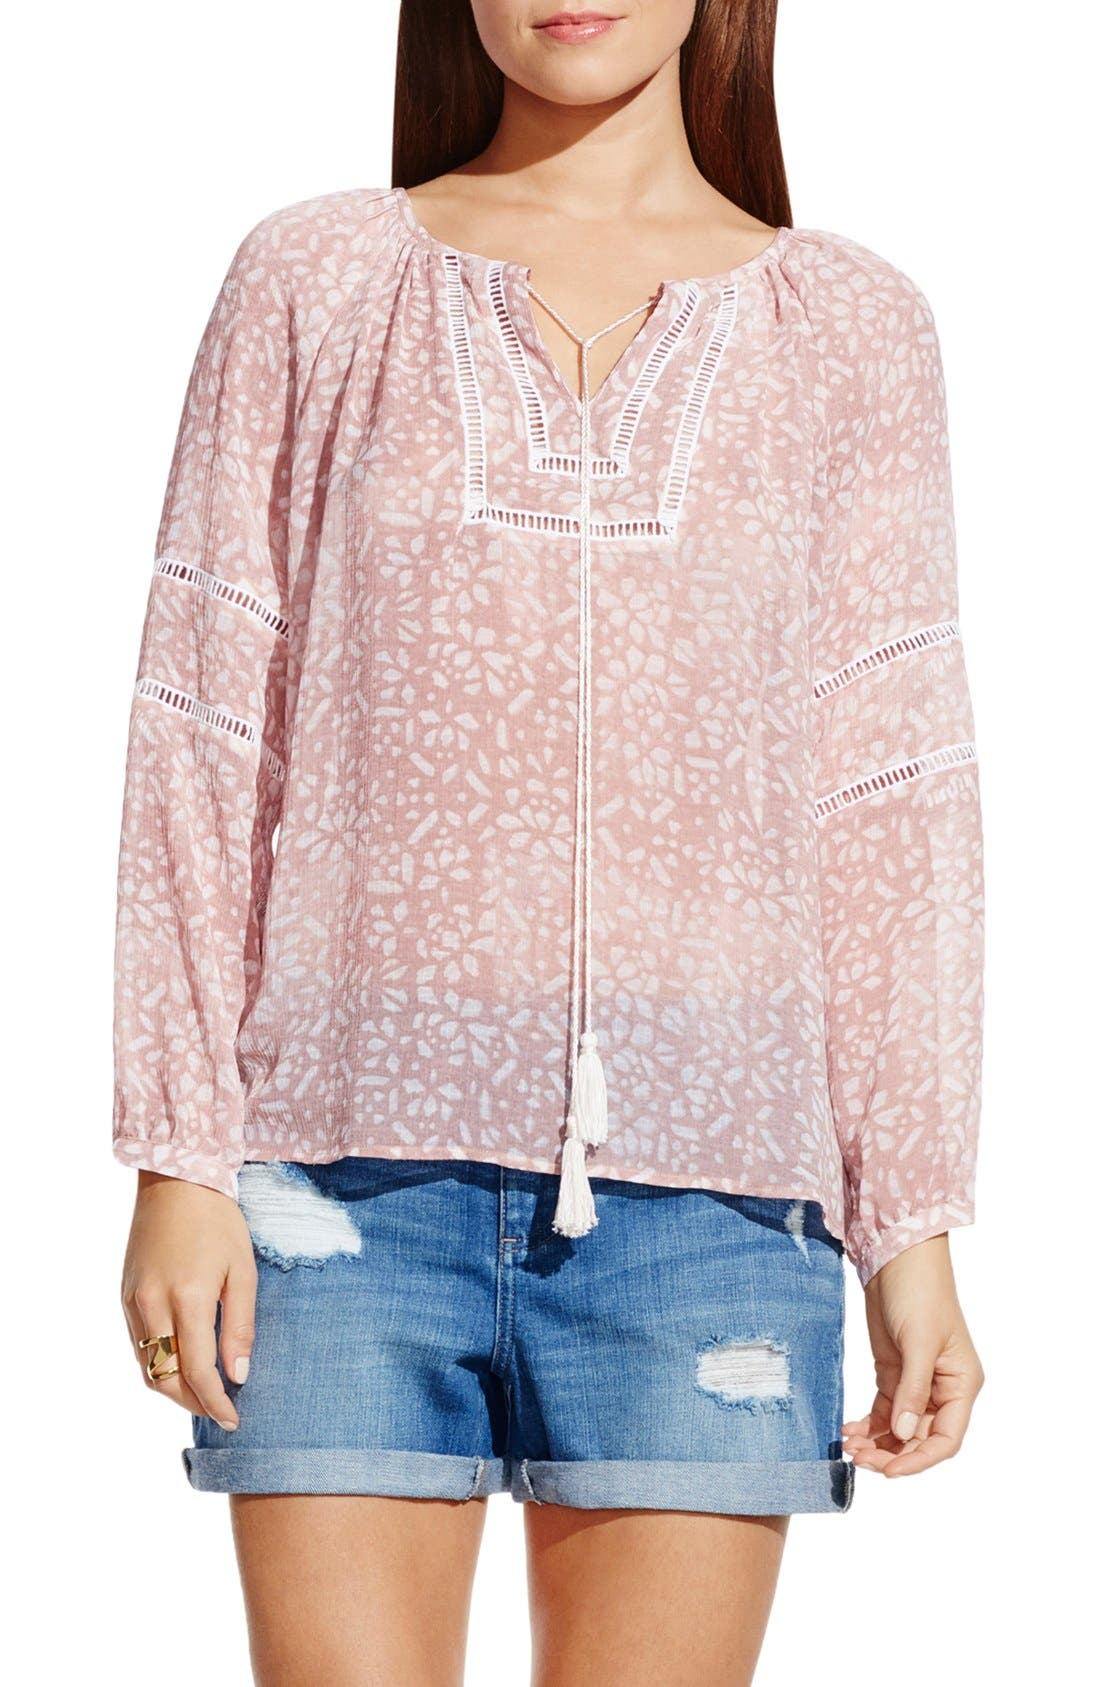 Alternate Image 1 Selected - Two by Vince Camuto 'Woodblock Petals' Peasant Blouse